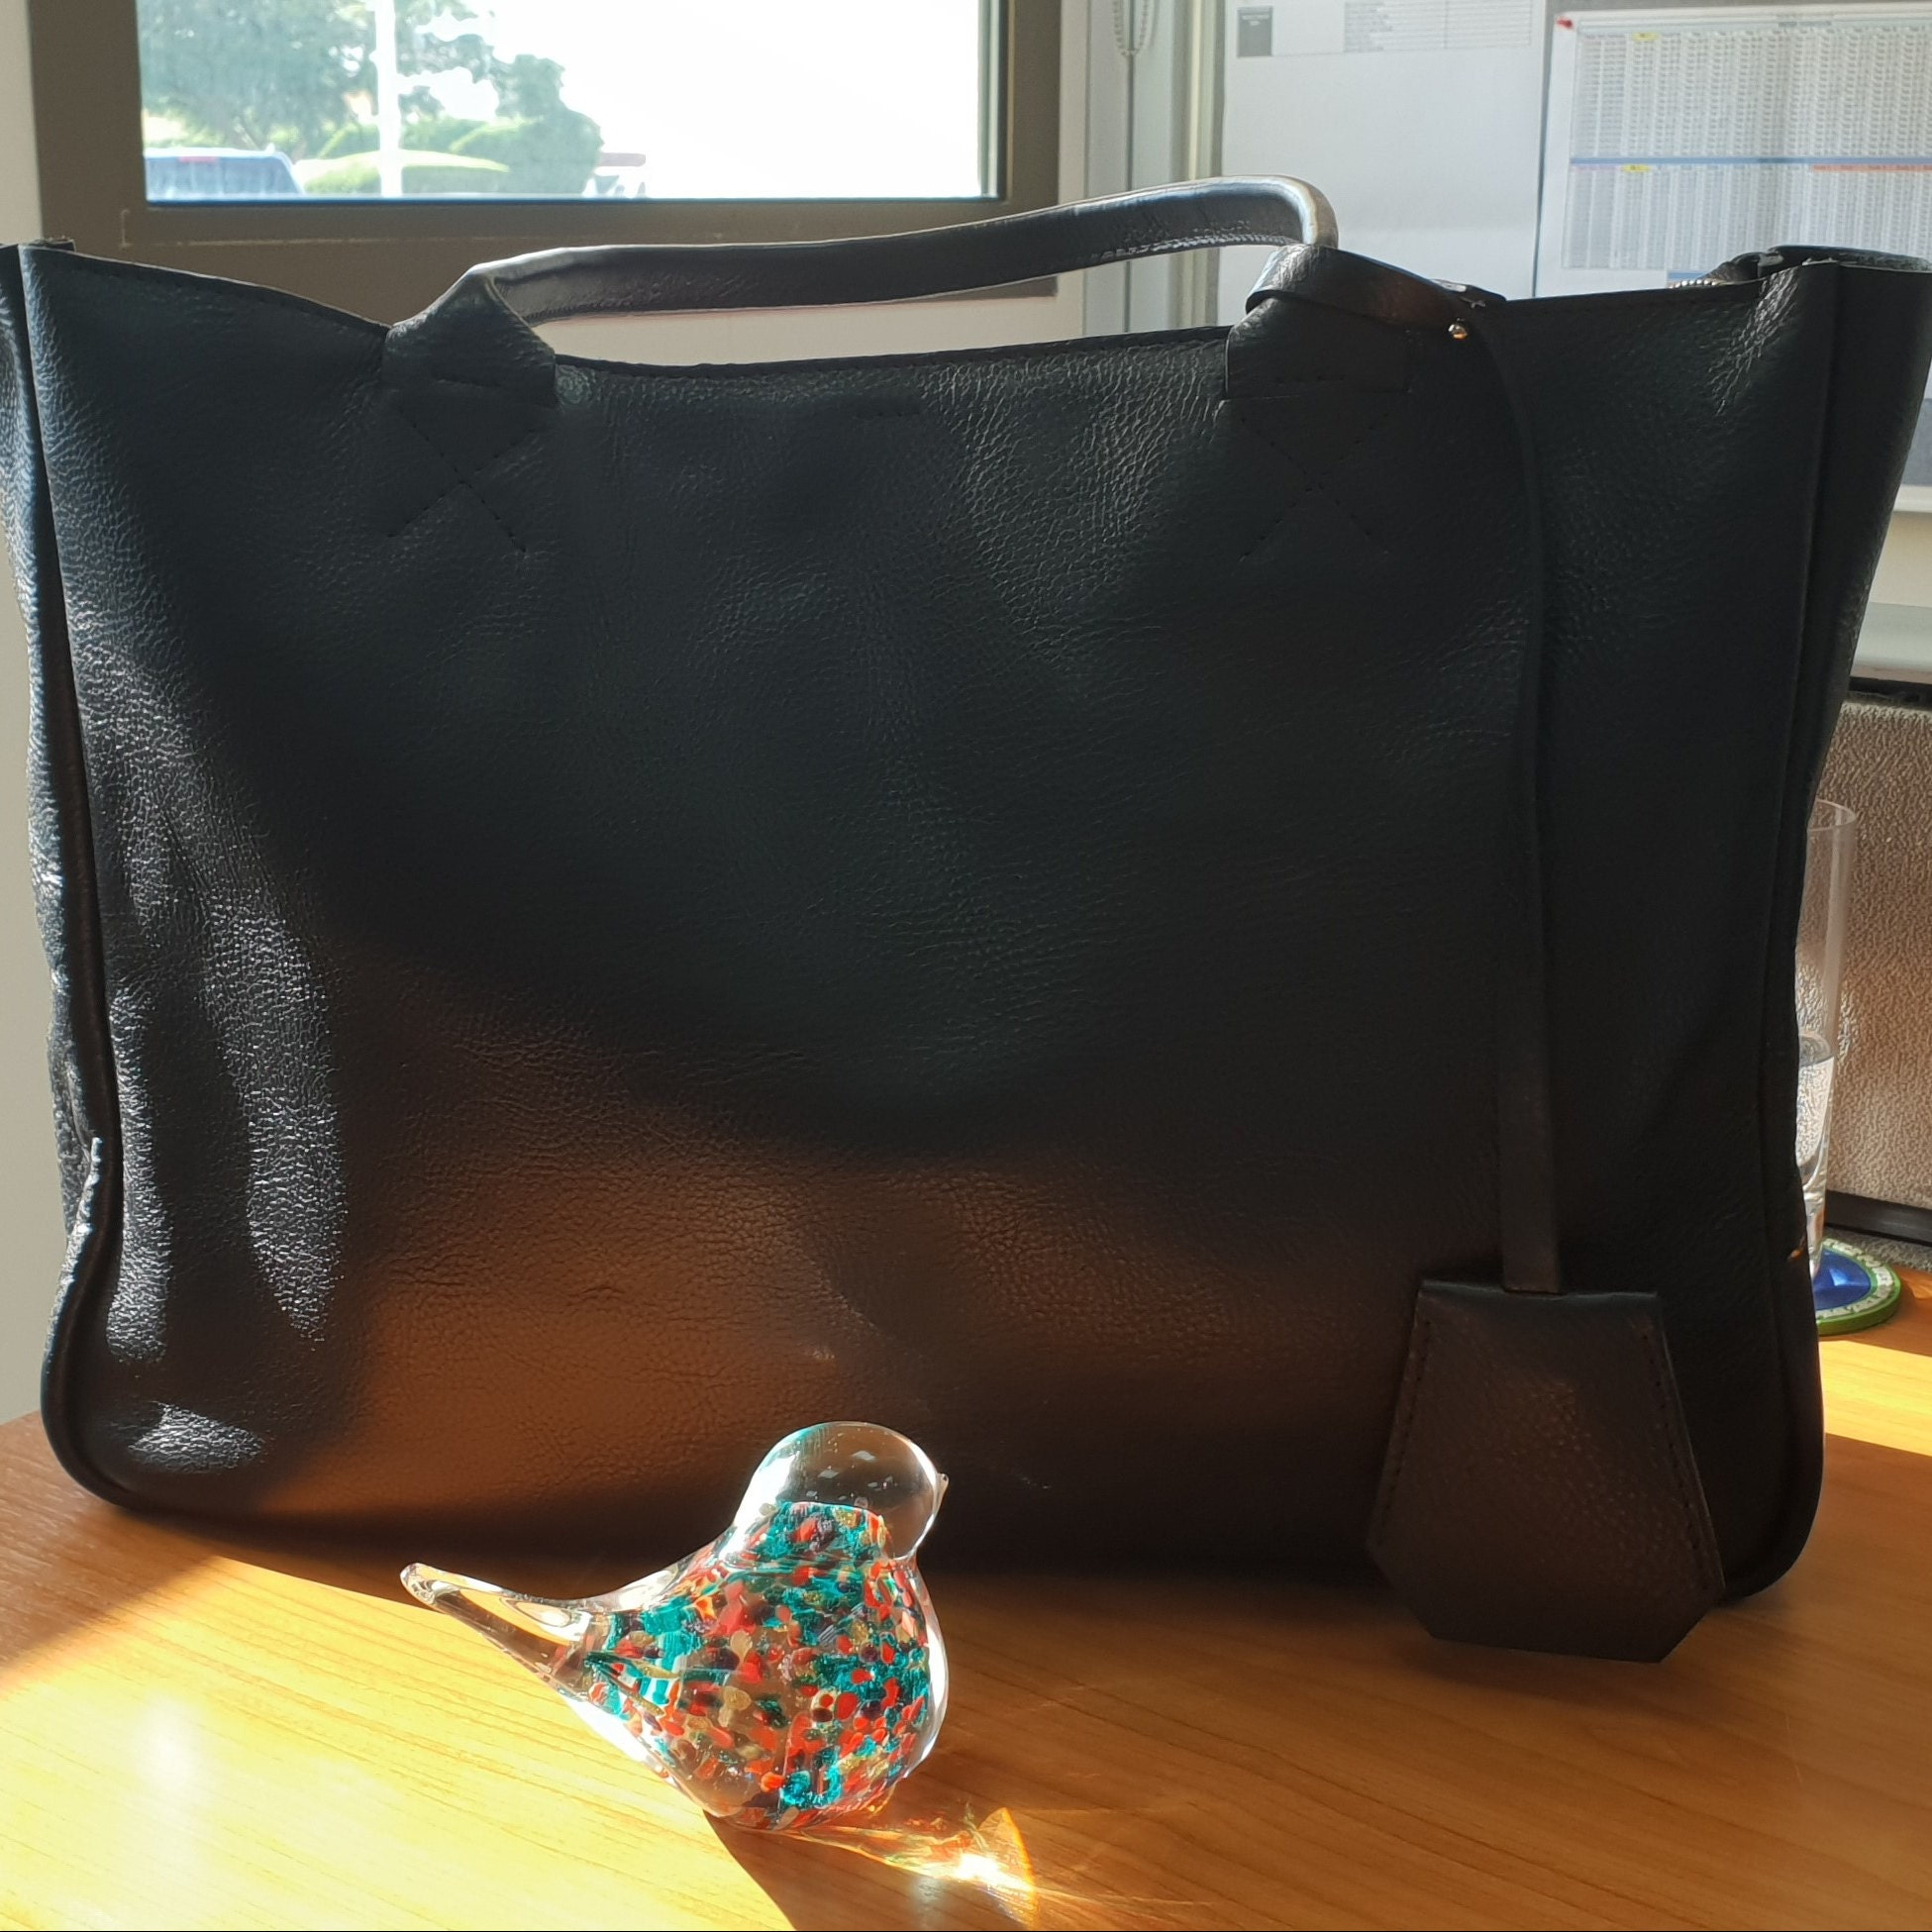 Leah Camacho added a photo of their purchase